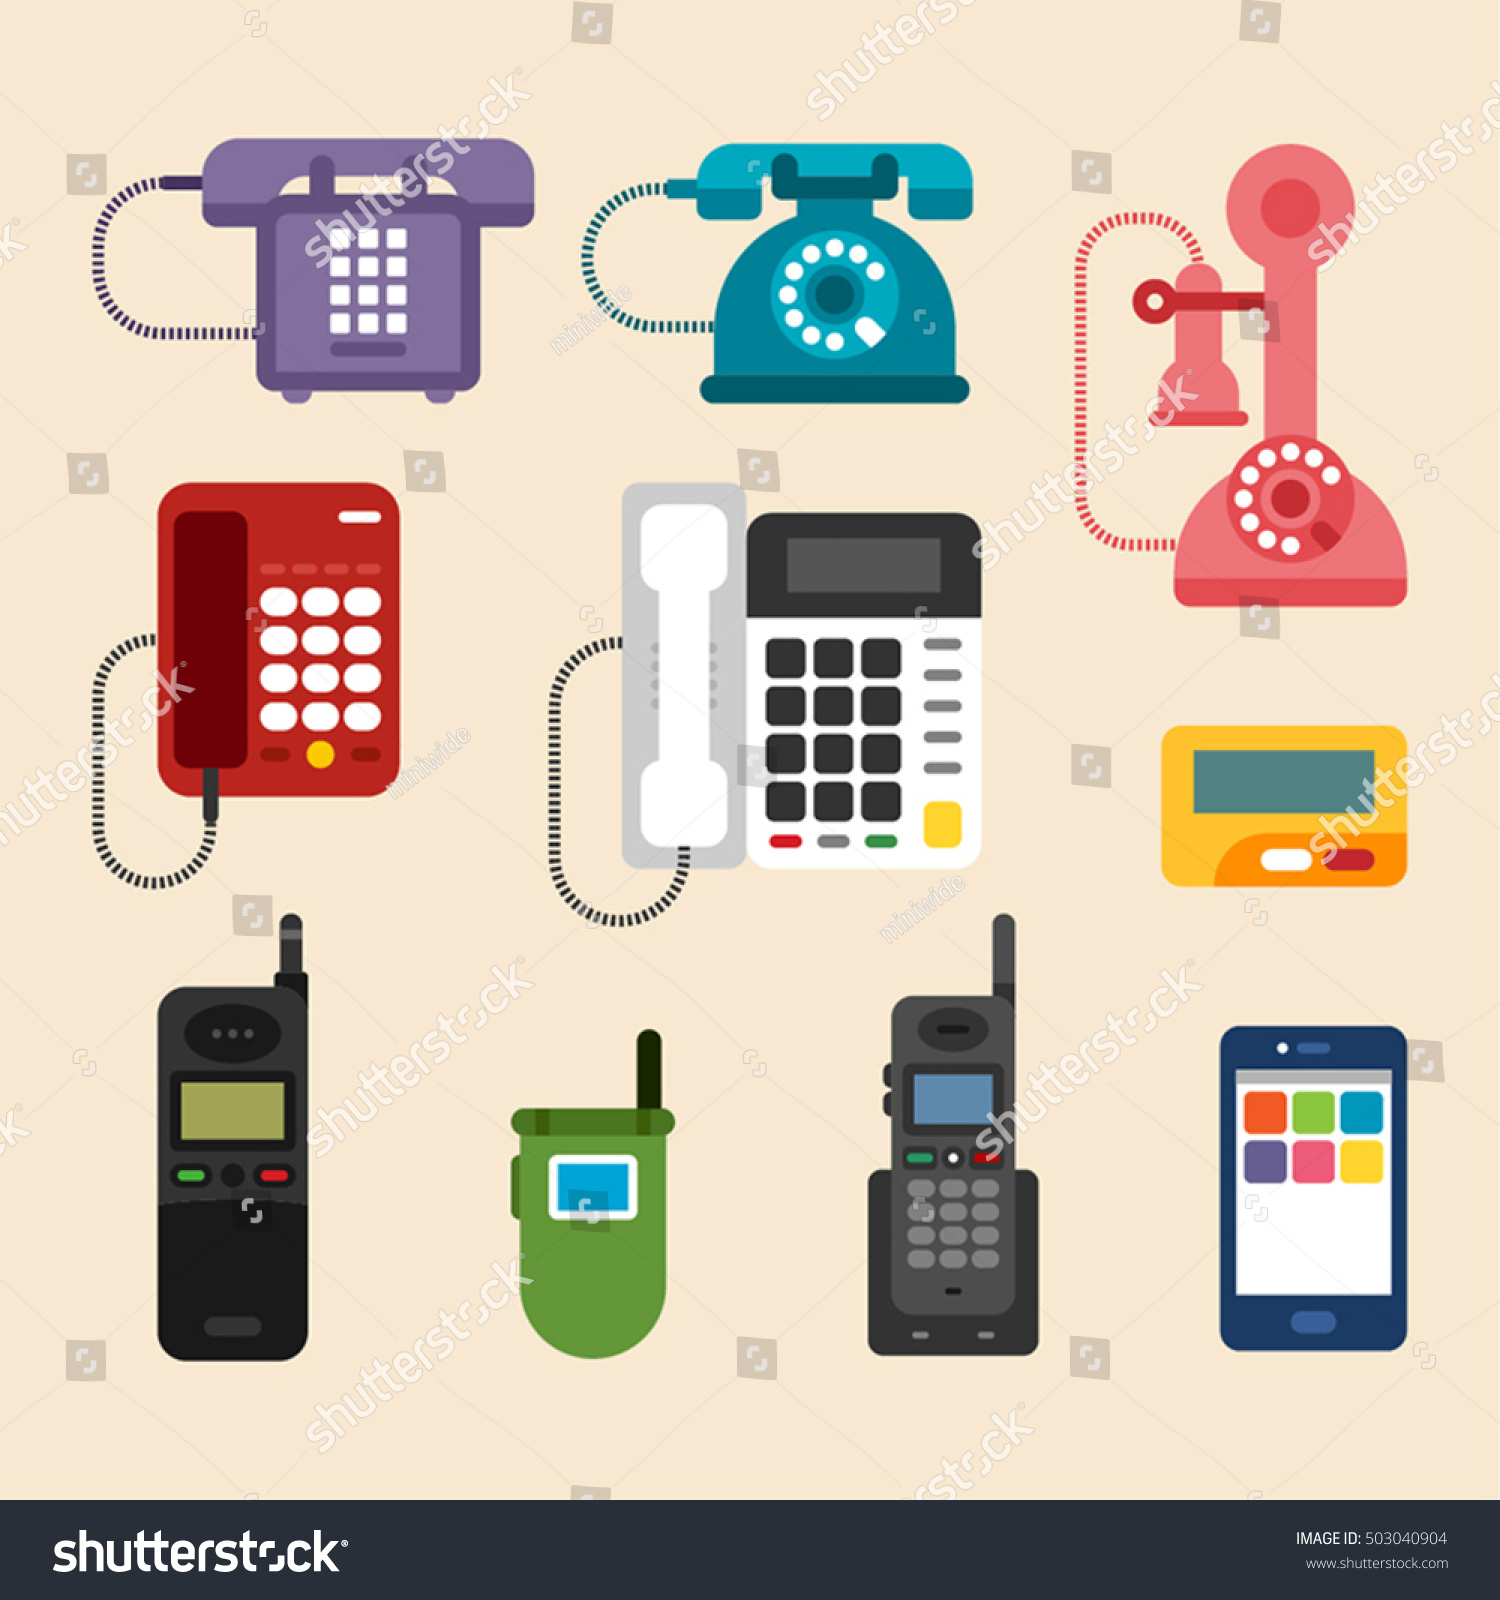 history of telephone